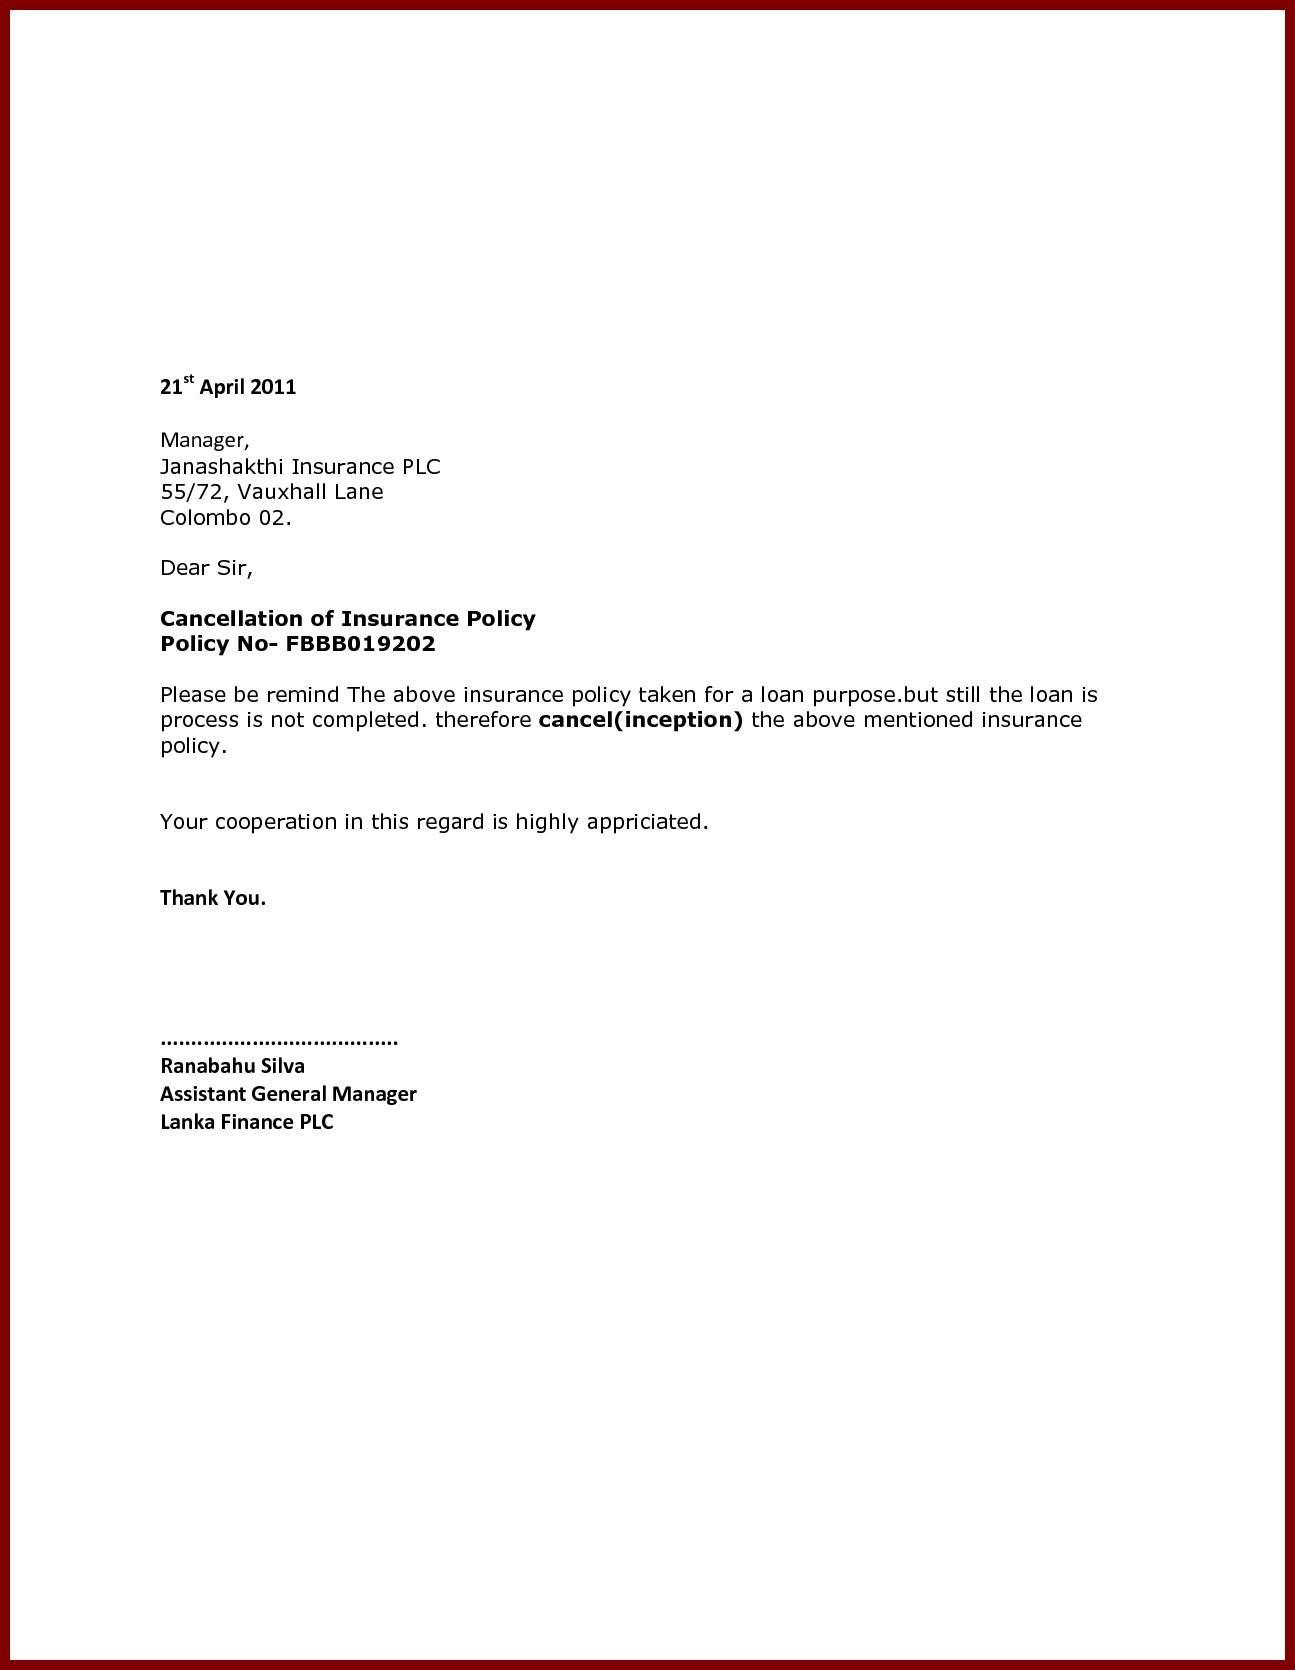 Insurance Policy Cancellation Letter Template - Example Cancellation Letter Save Cancel Service Letter for